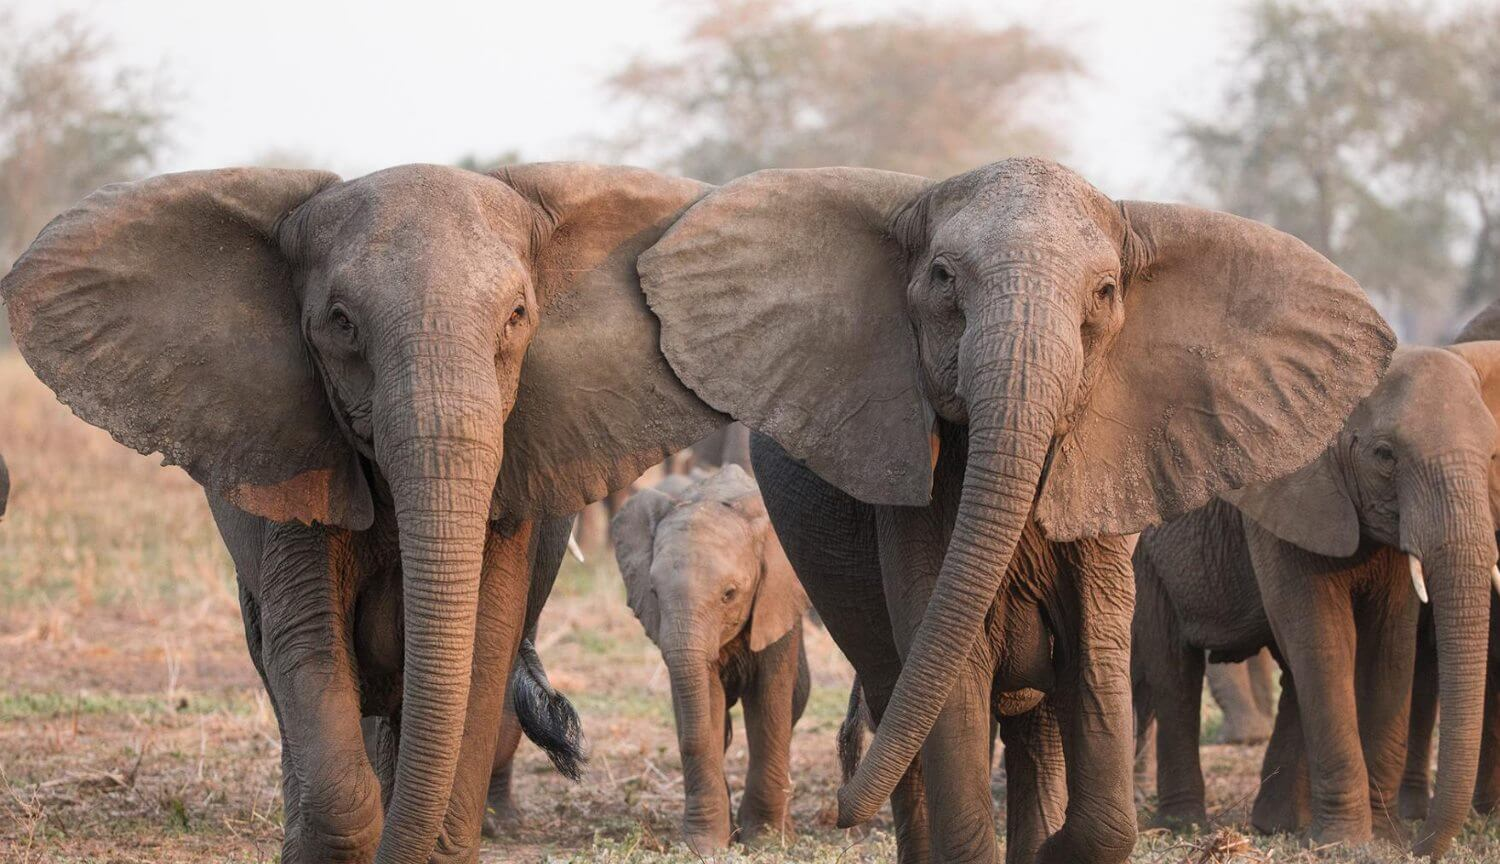 Indian elephants began to gather in the